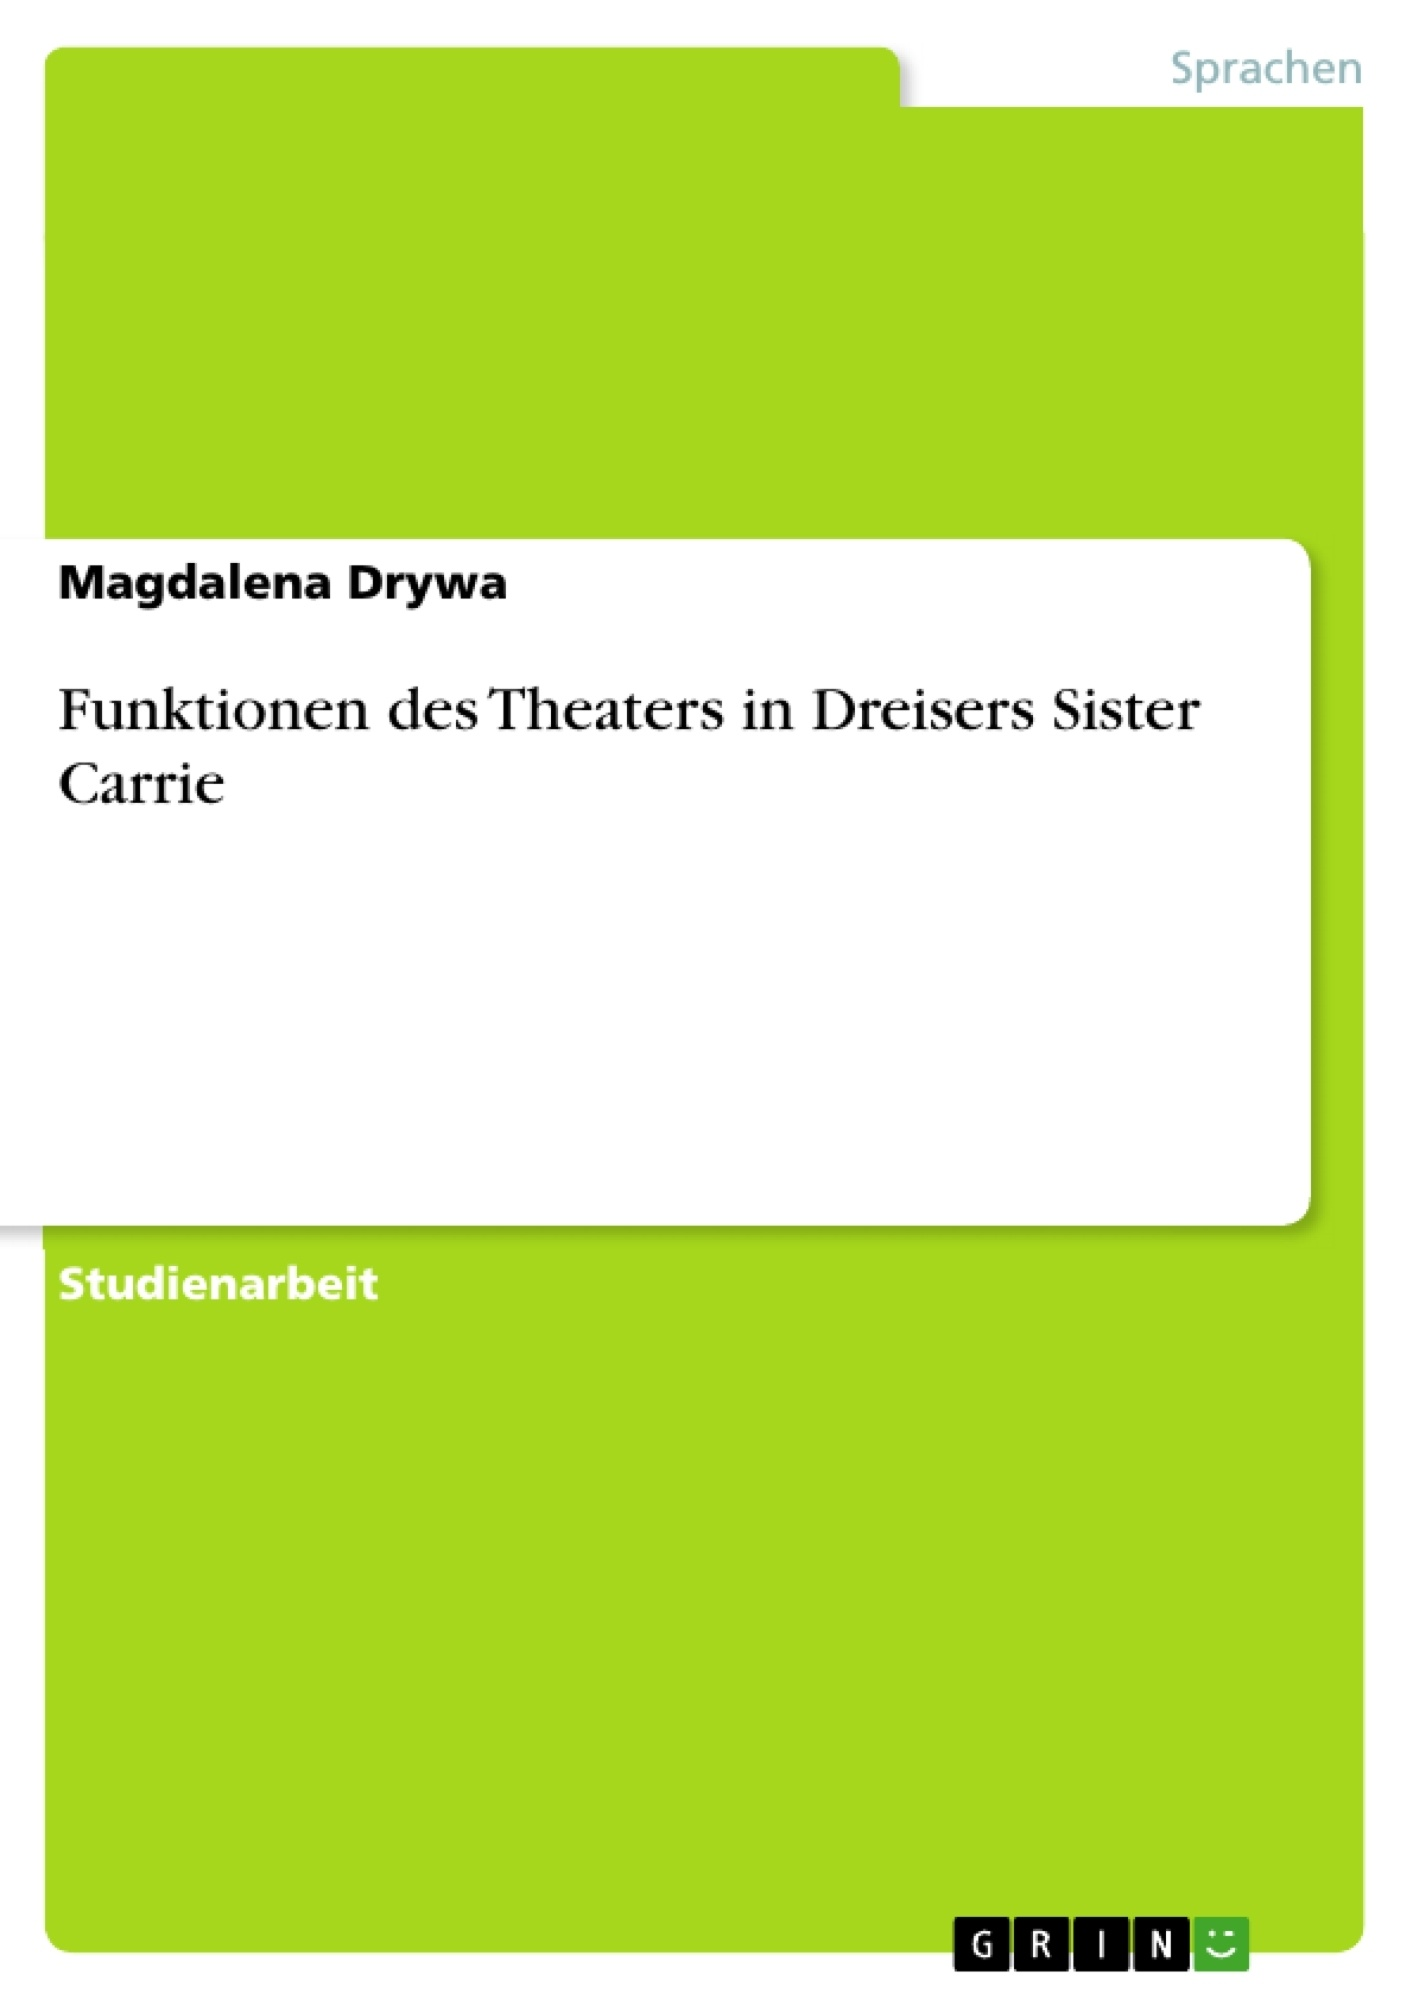 naturalism in dreisers sister carrie essay Critical essays symbolism in sister carrie bookmark this page manage my reading list in this way the symbolic level of the narrative is laid directly over the events and occurrences of the simple story itself.